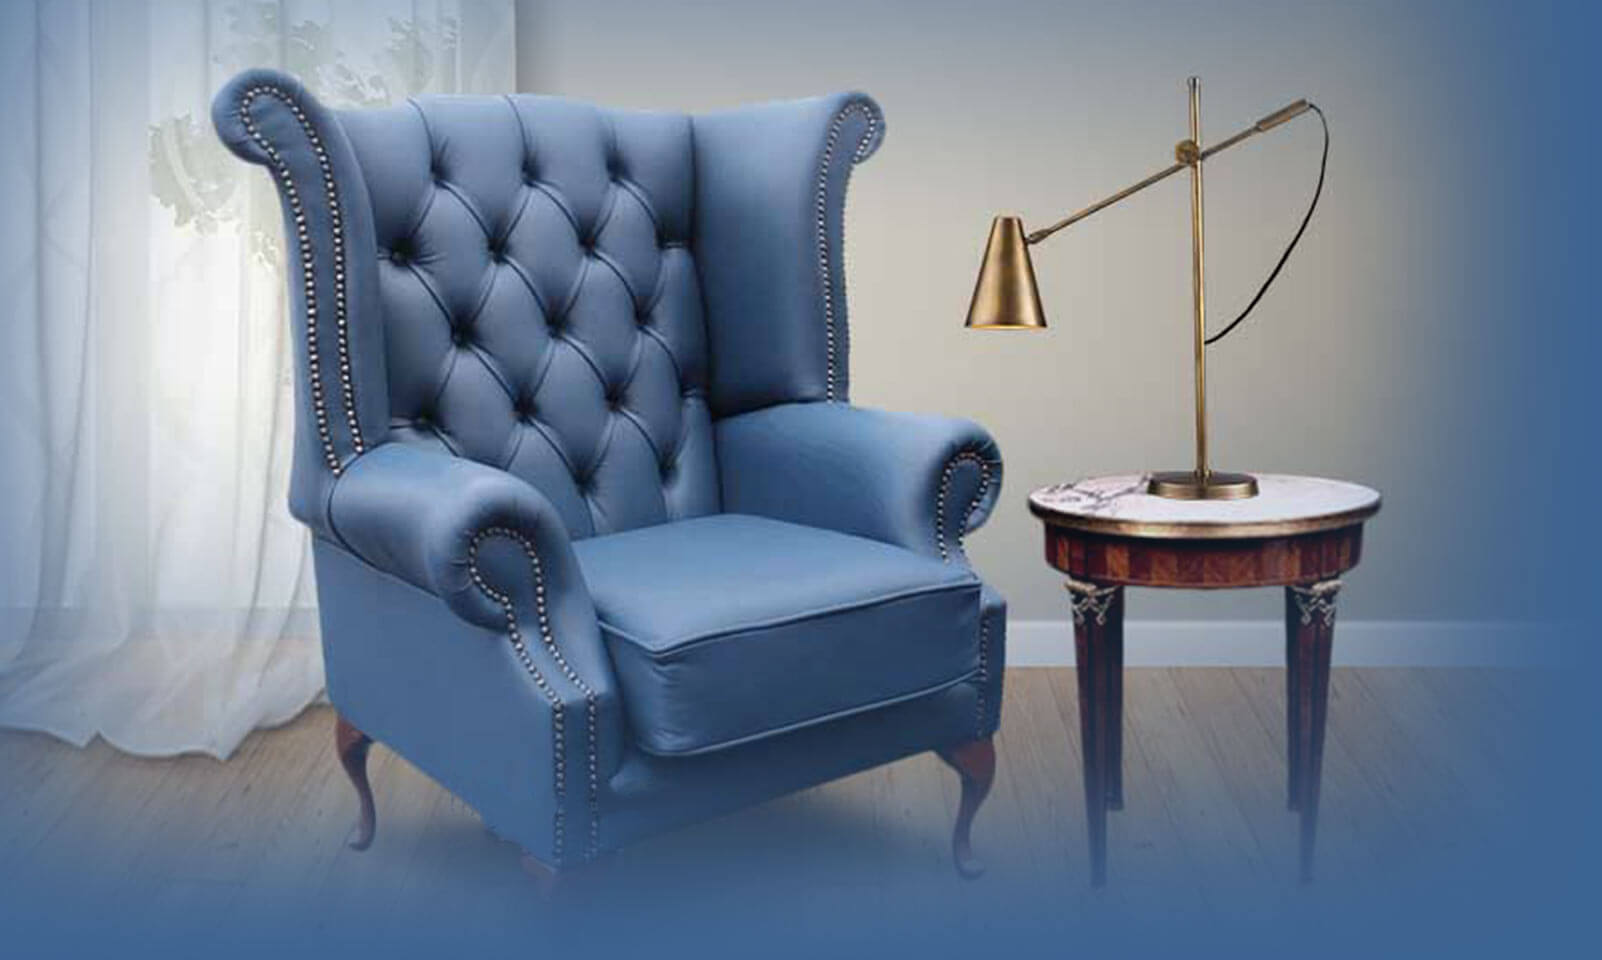 Chesterfield Wing Chairs – Handcrafted in the UK